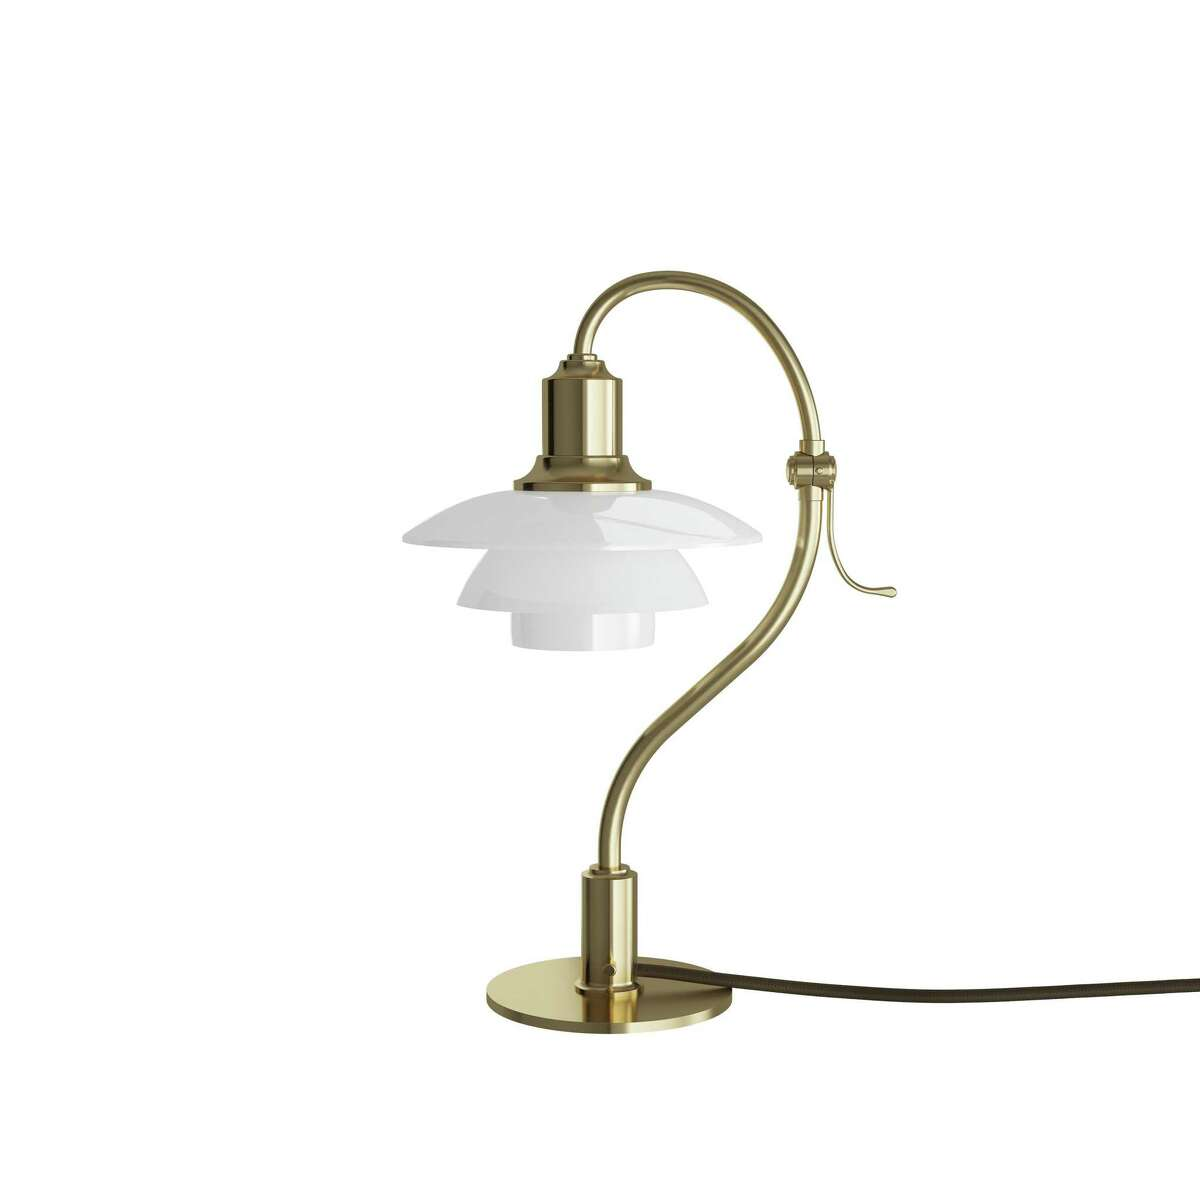 Louis Poulsen is reissuing the Poul Henningsen's PH 2/2 Question Mark lamp in its Fall 2021 Collection.